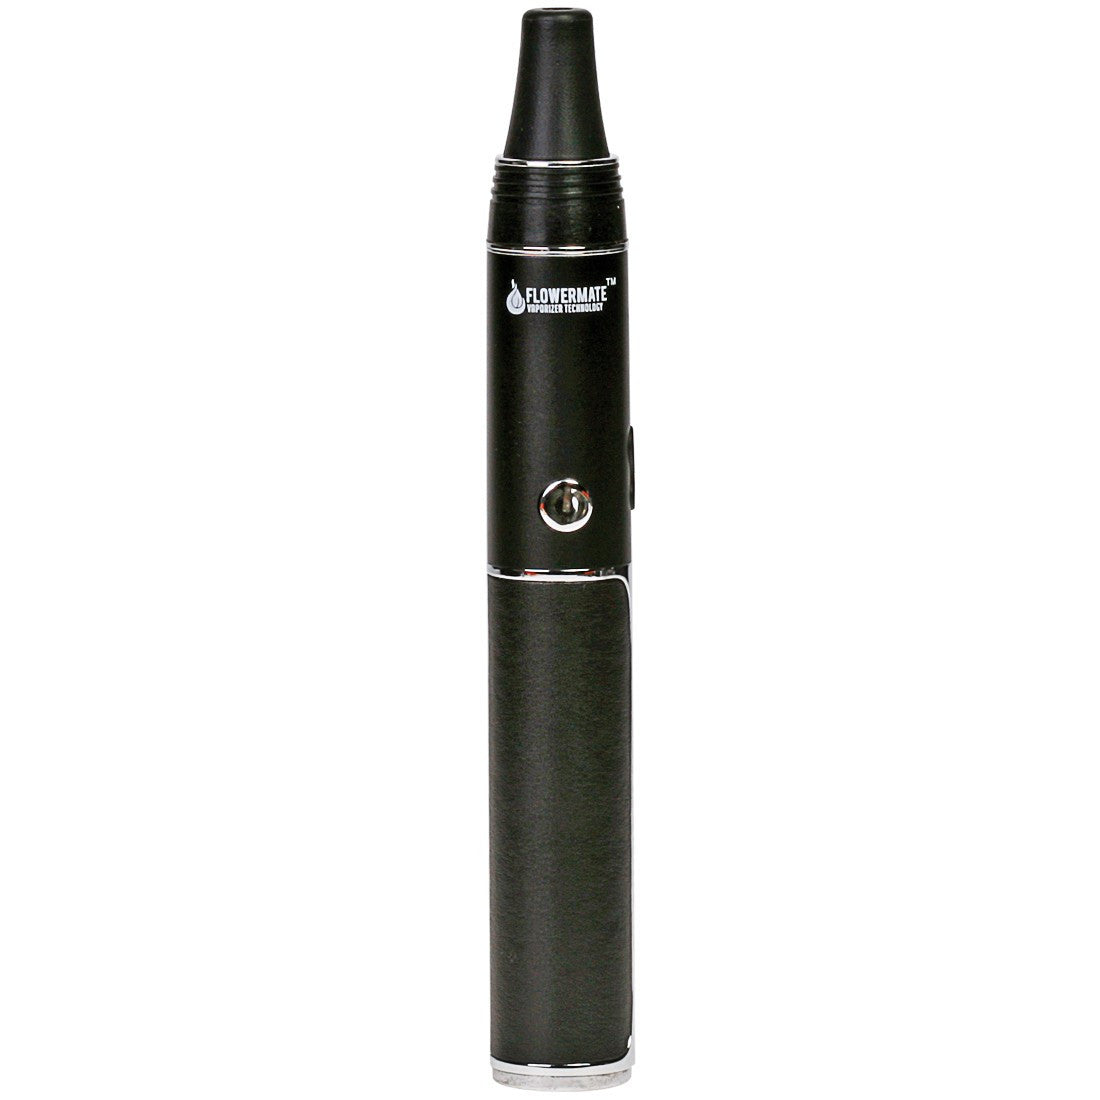 DISCONTINUED FlowerMate V3.0 Vaporizer